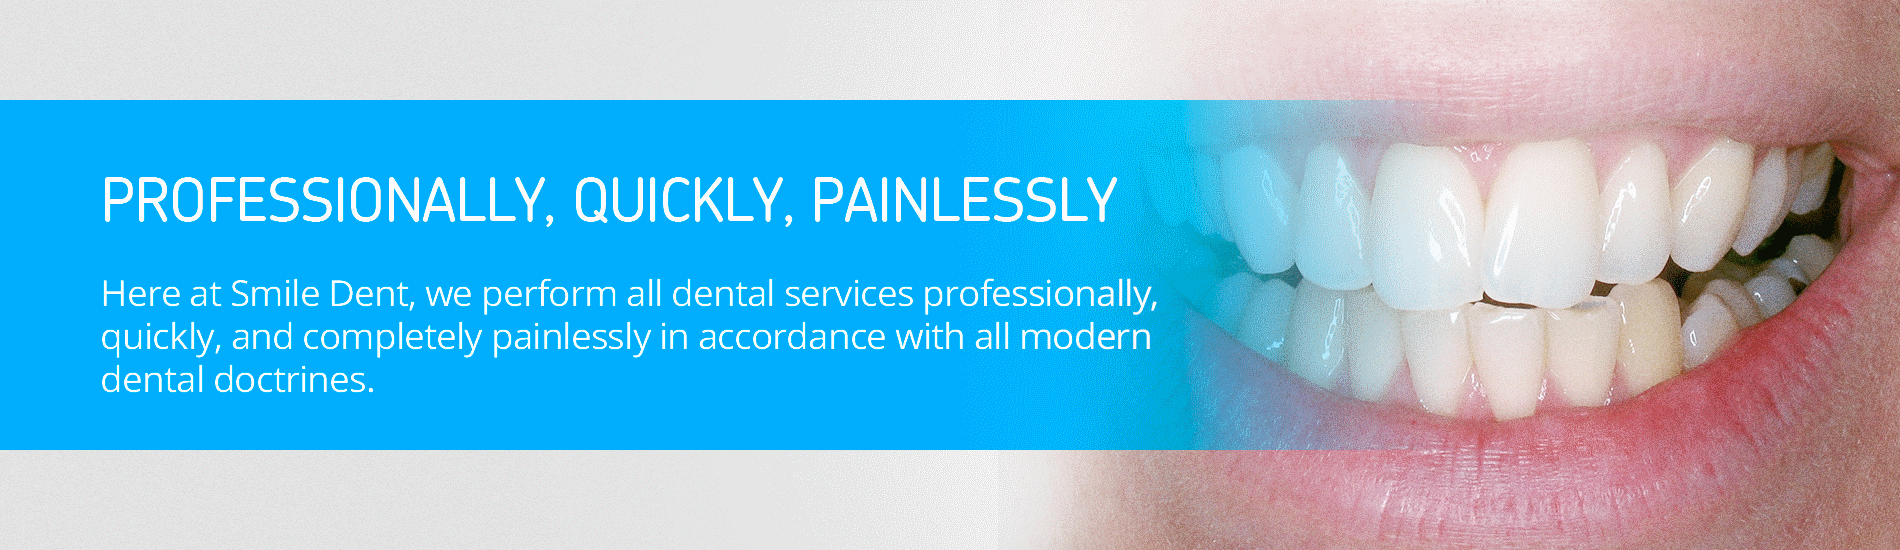 Professionally, Quickly, Painlessly